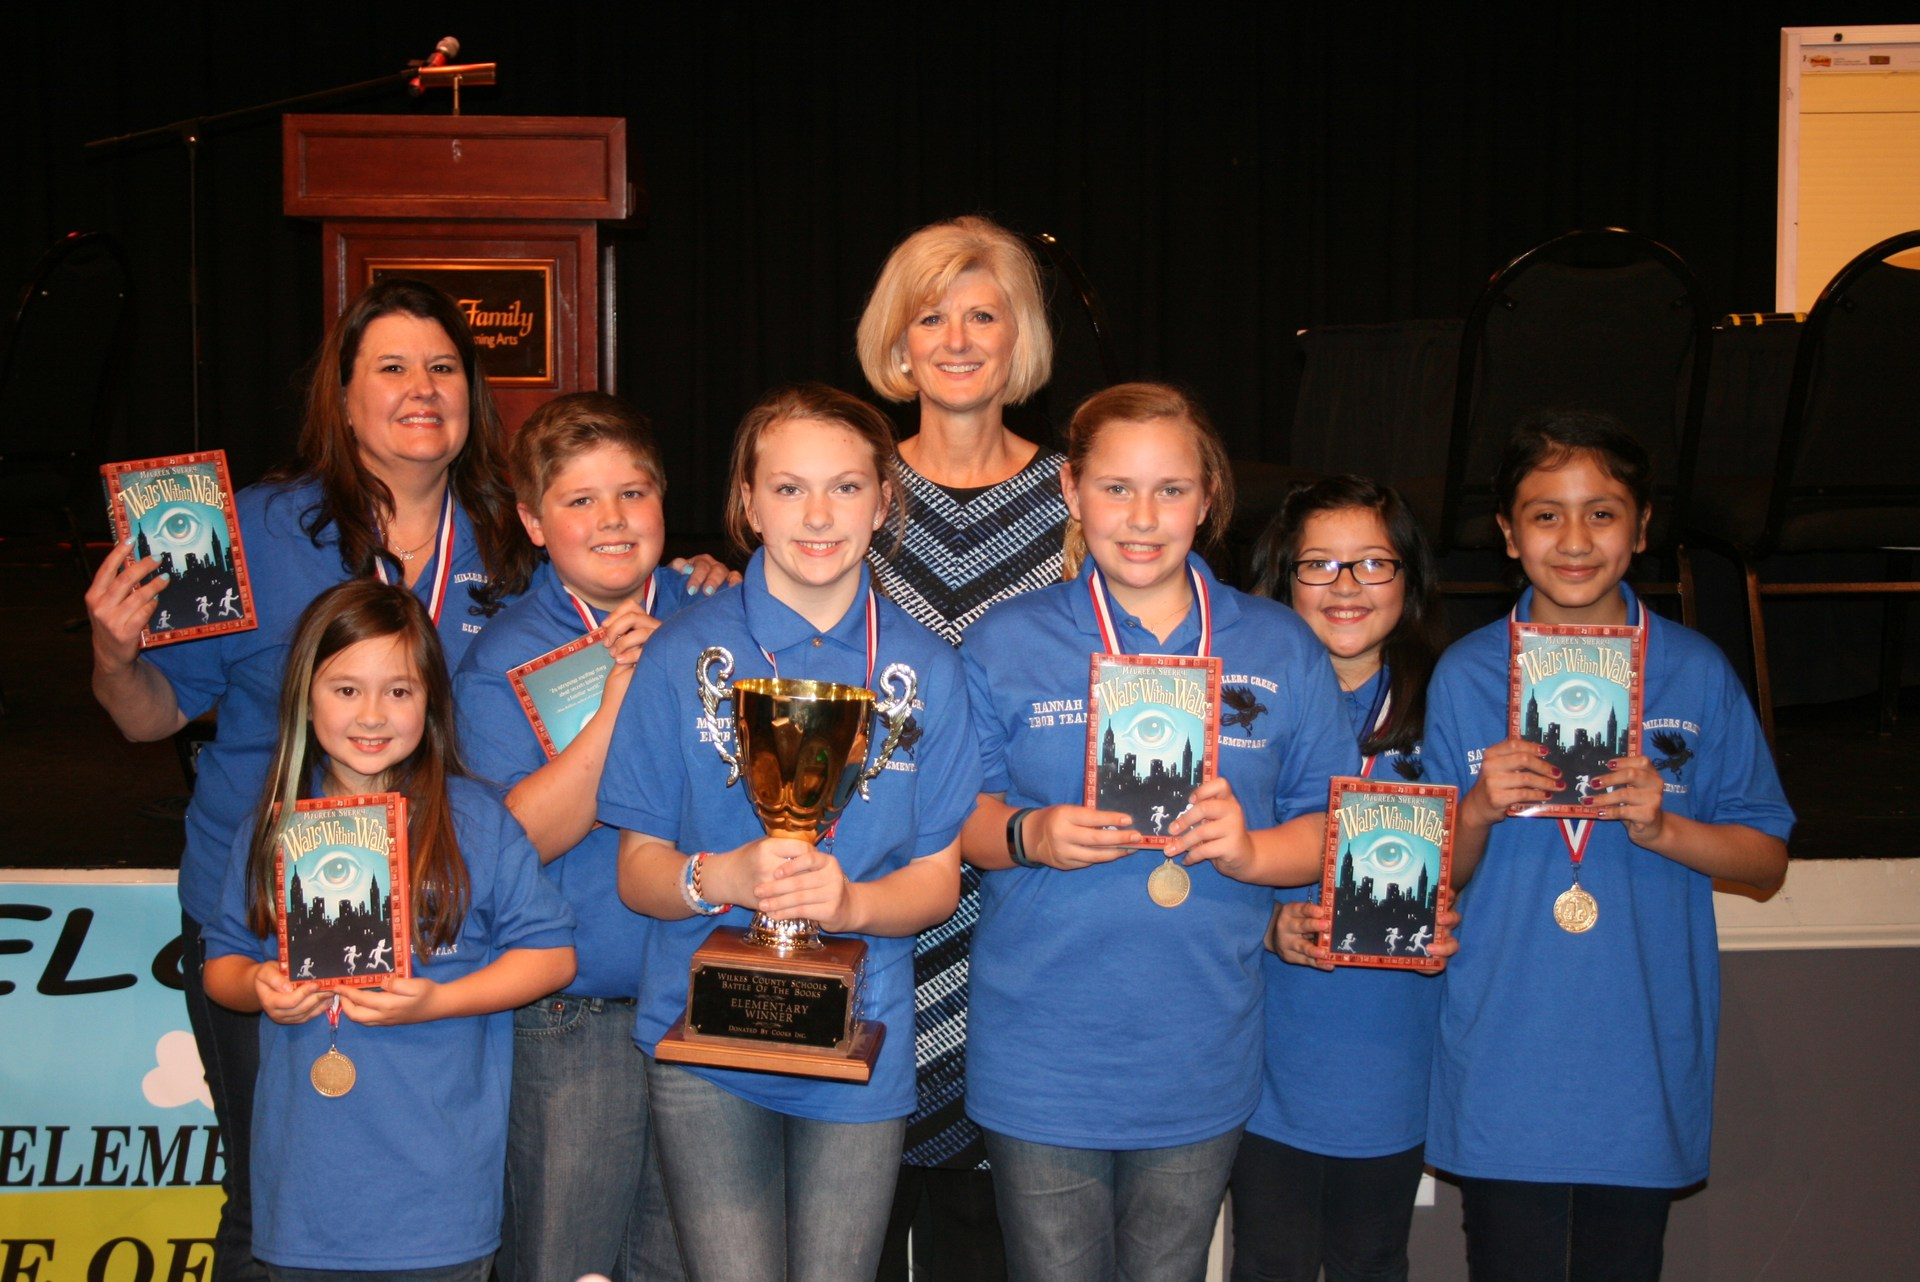 Millers Creek Elementary's Battle of the Books Team